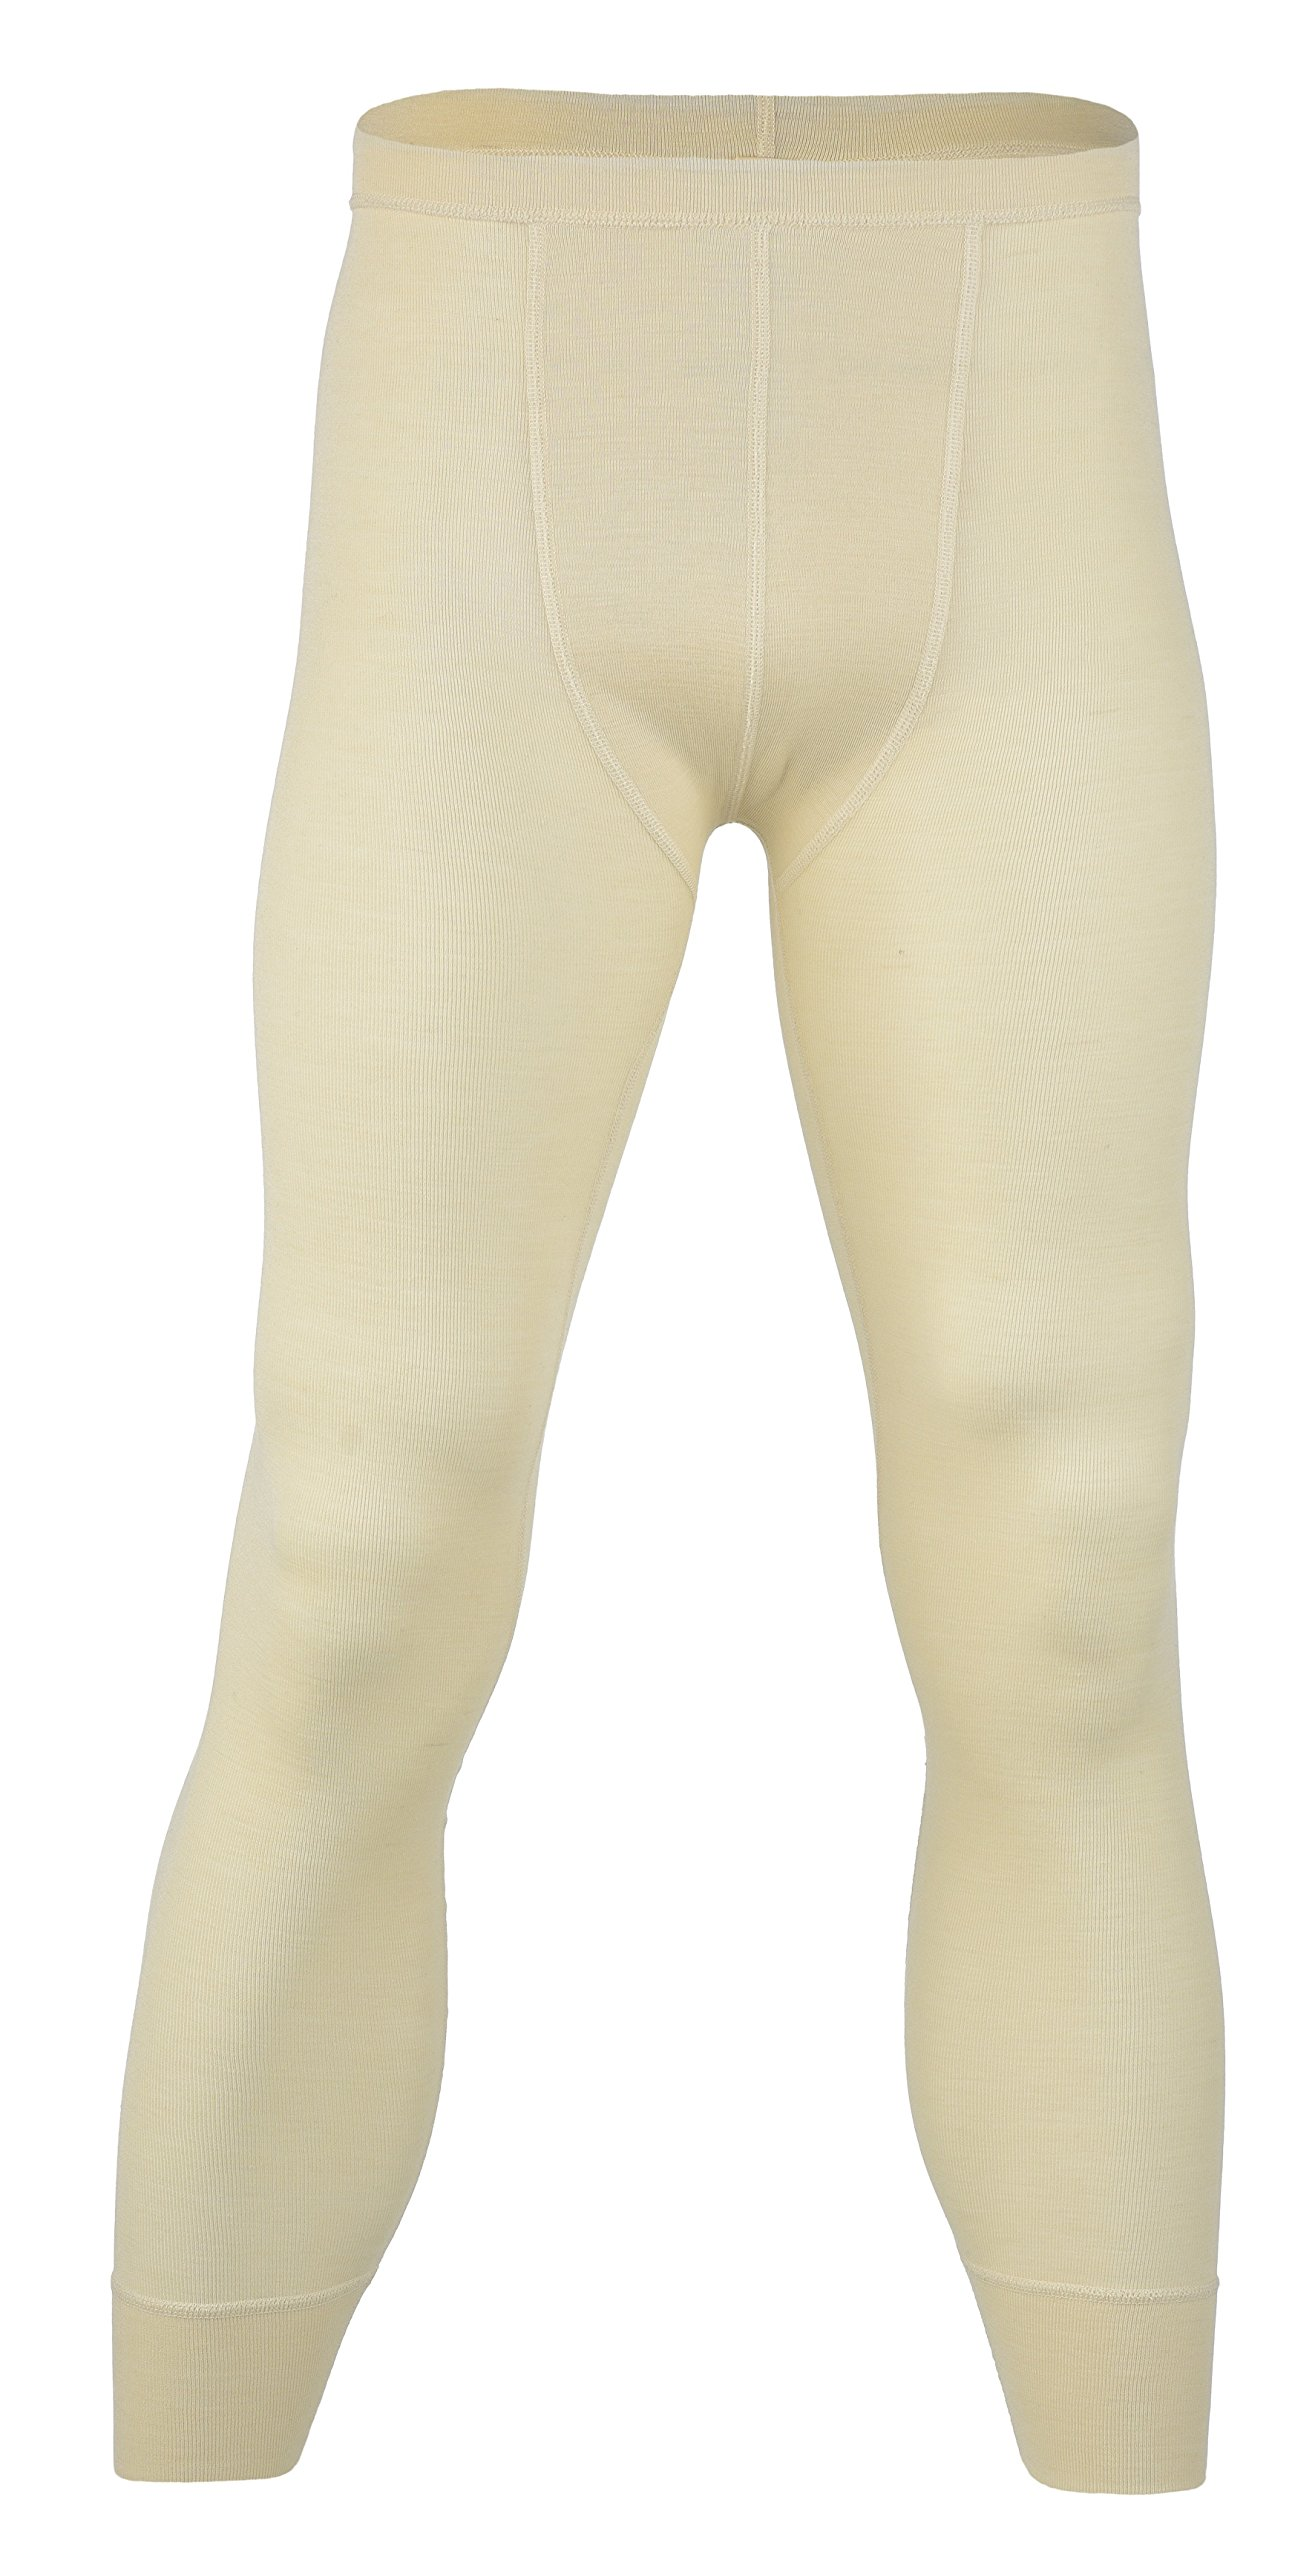 Engel 70% Organic Merino Wool 30% Silk Men's Long Johns Leggings. Made in Germany. (Natural, EU 54/56) by Engel